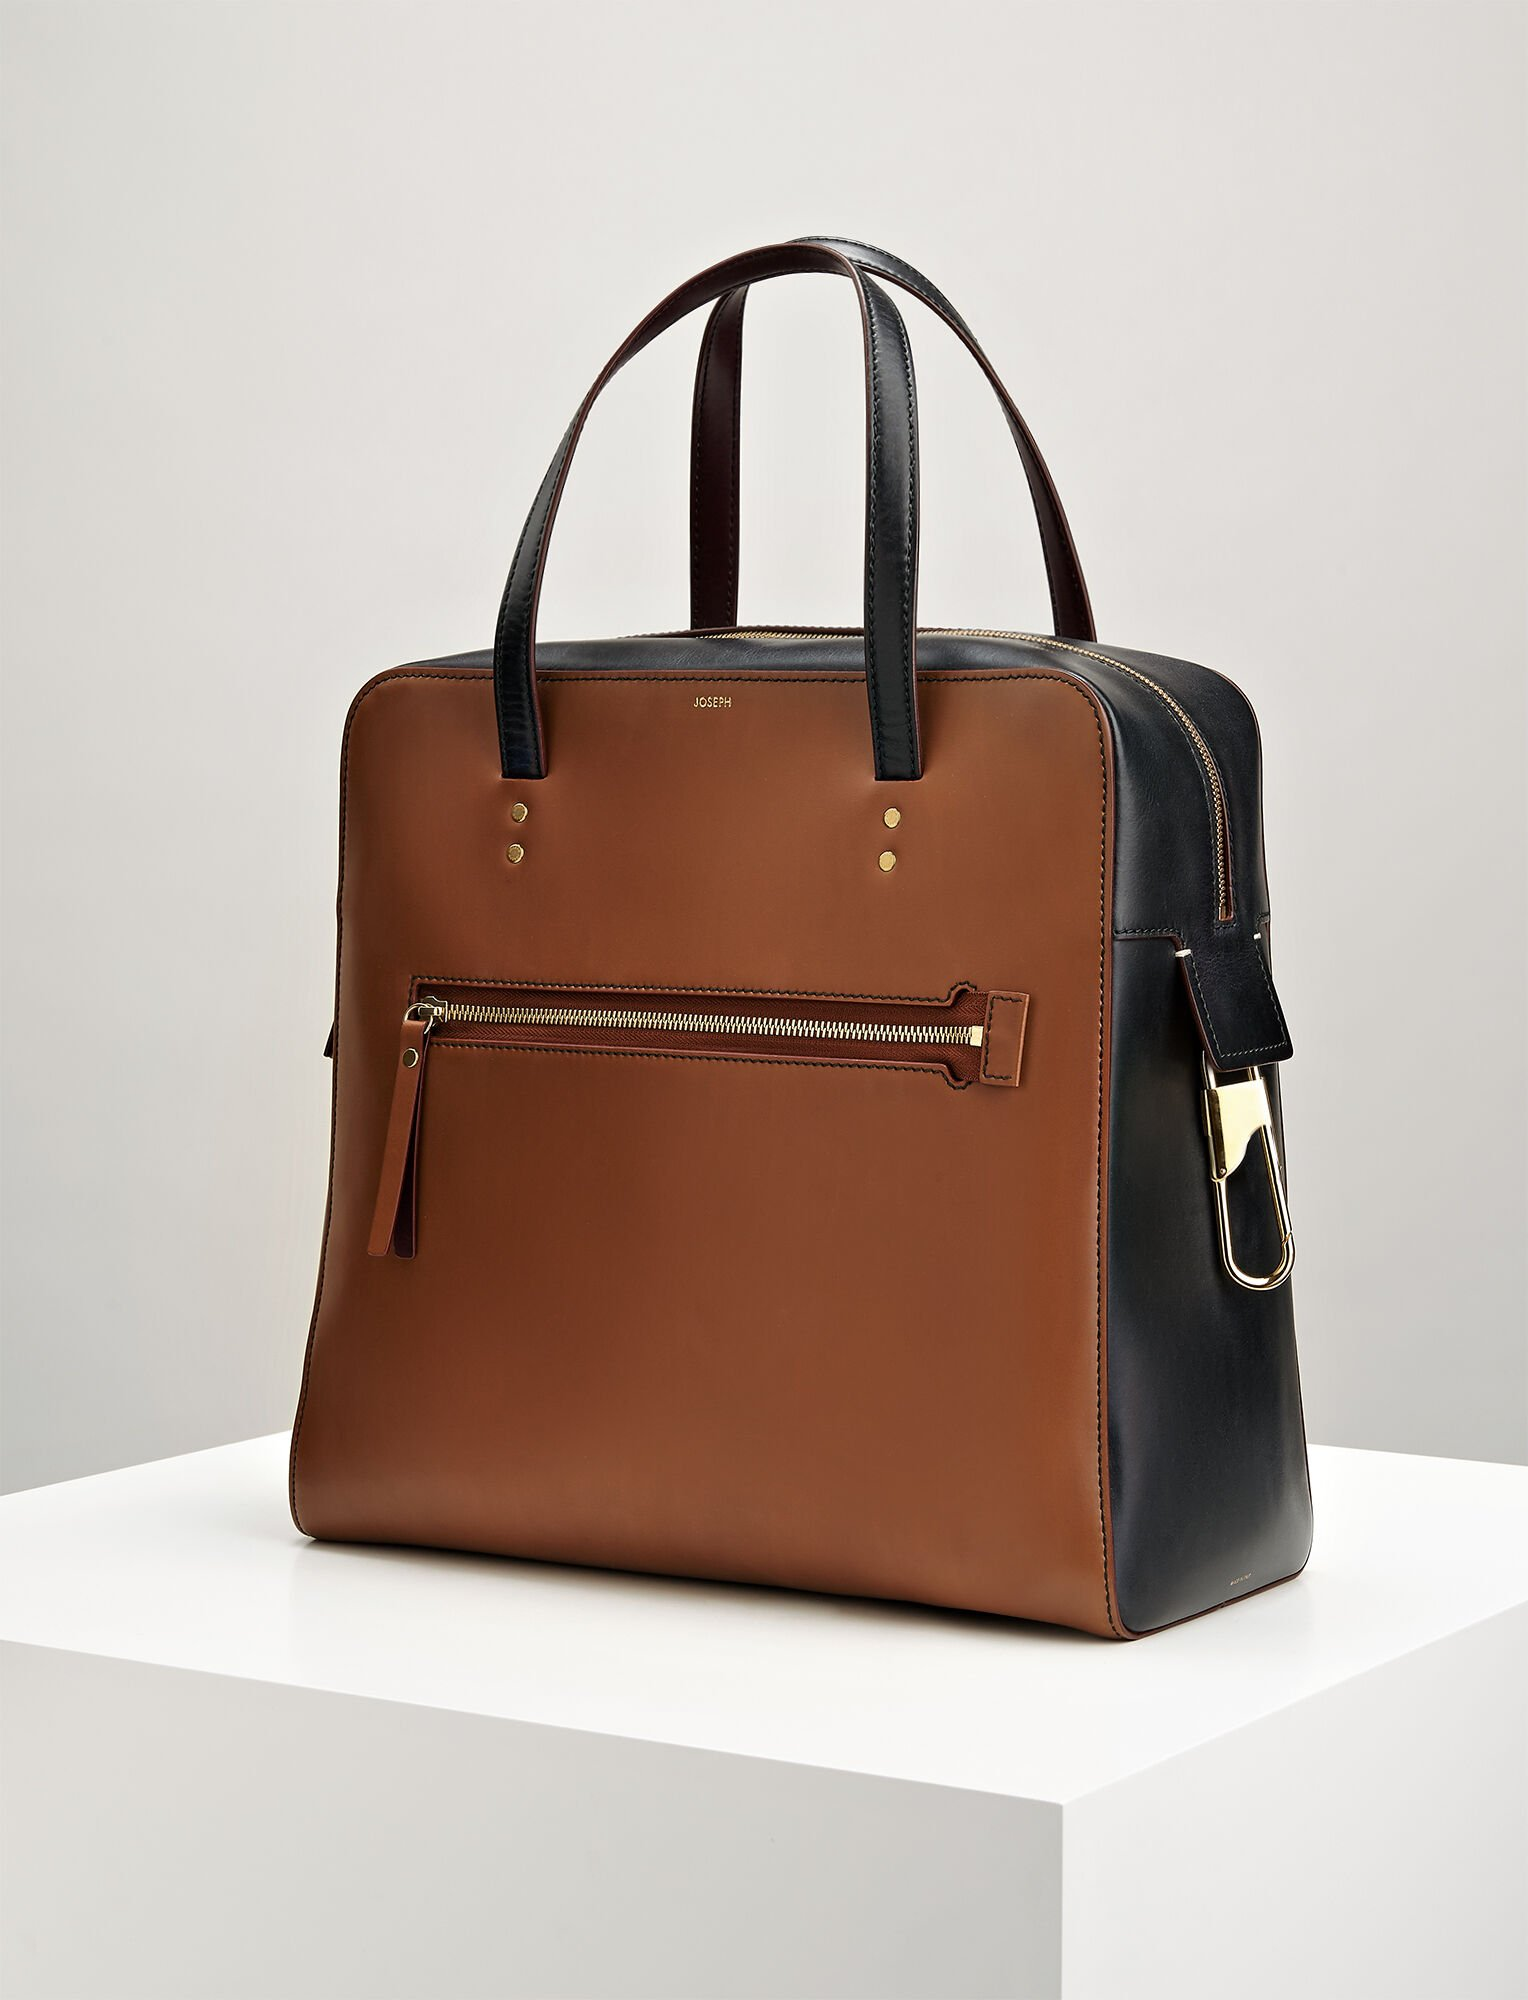 Joseph, Leather Ryder Bag, in SADDLE